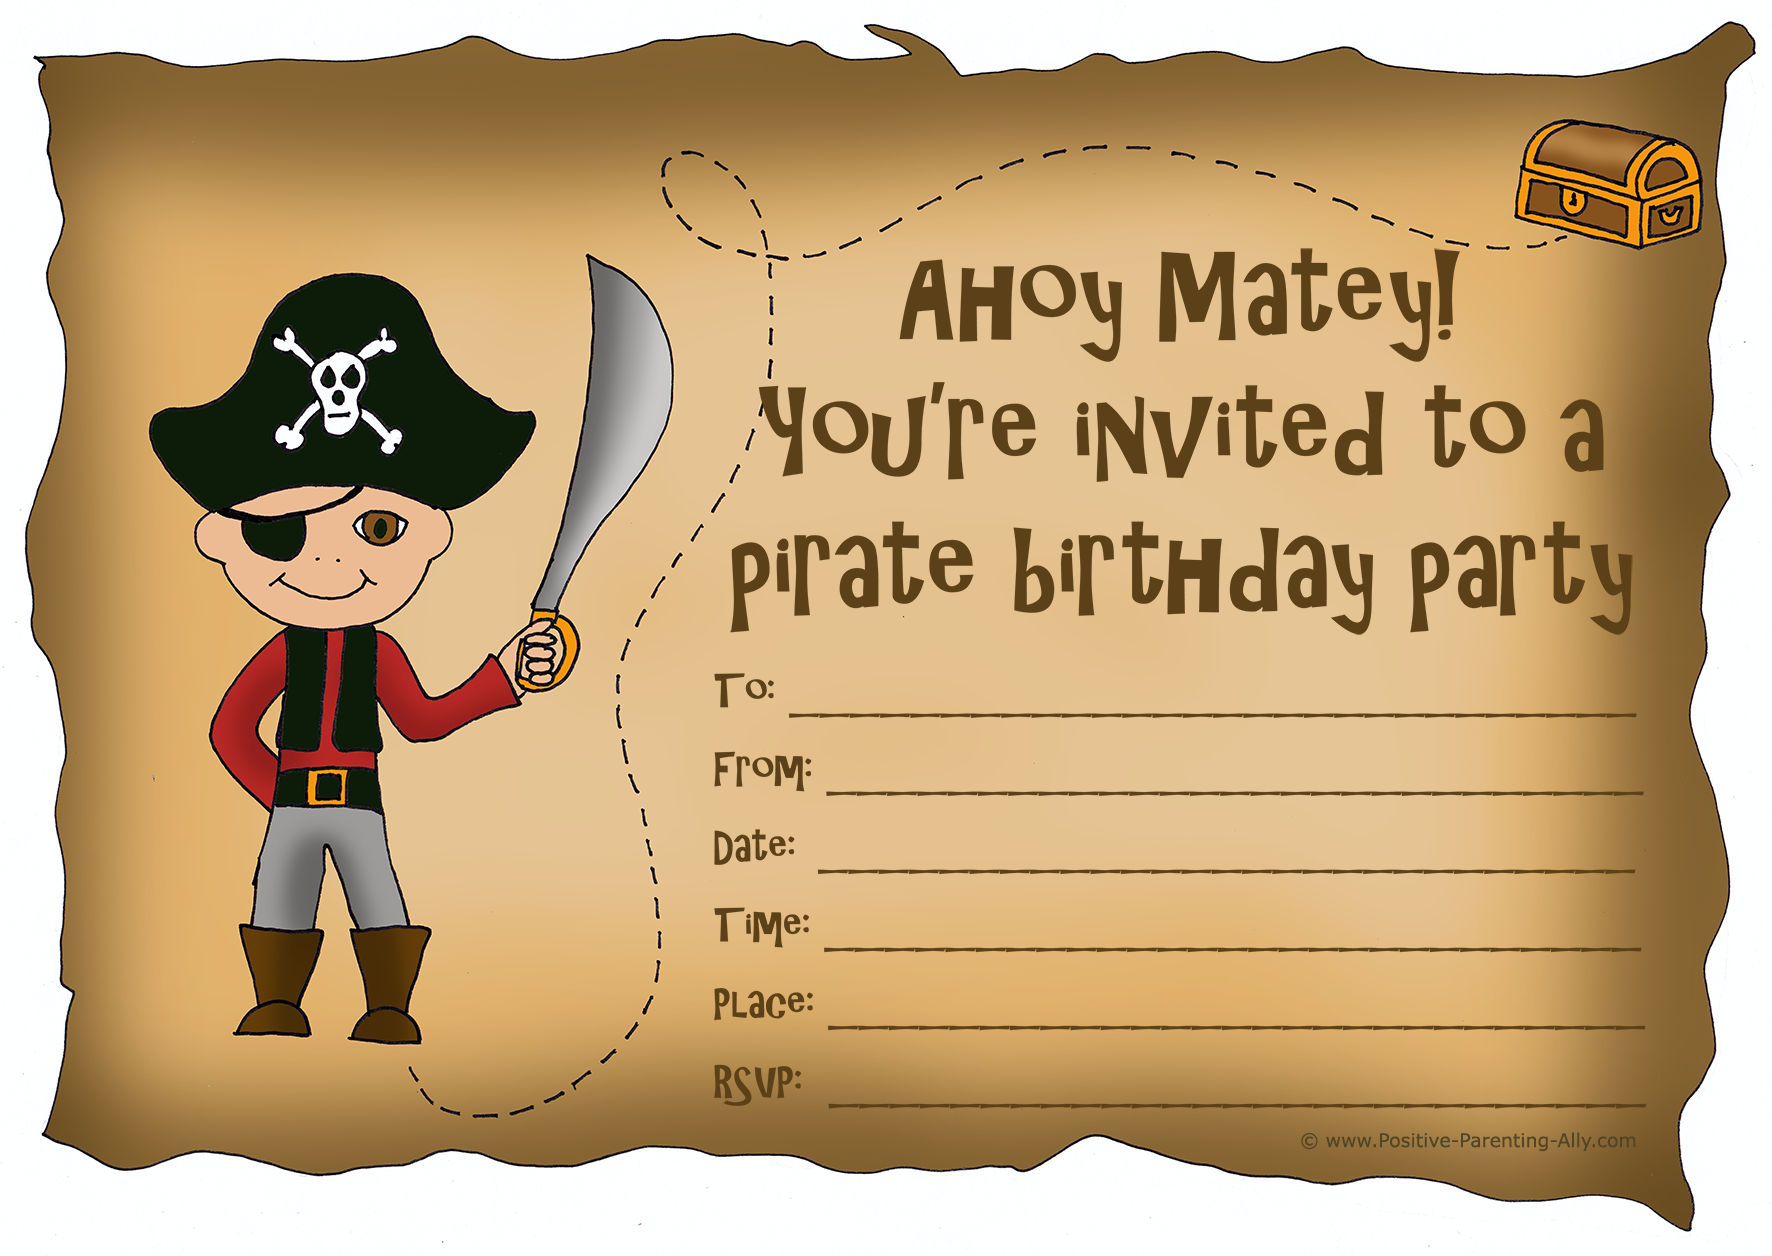 Printable pirate birthday party invites with potential treasure hunt.